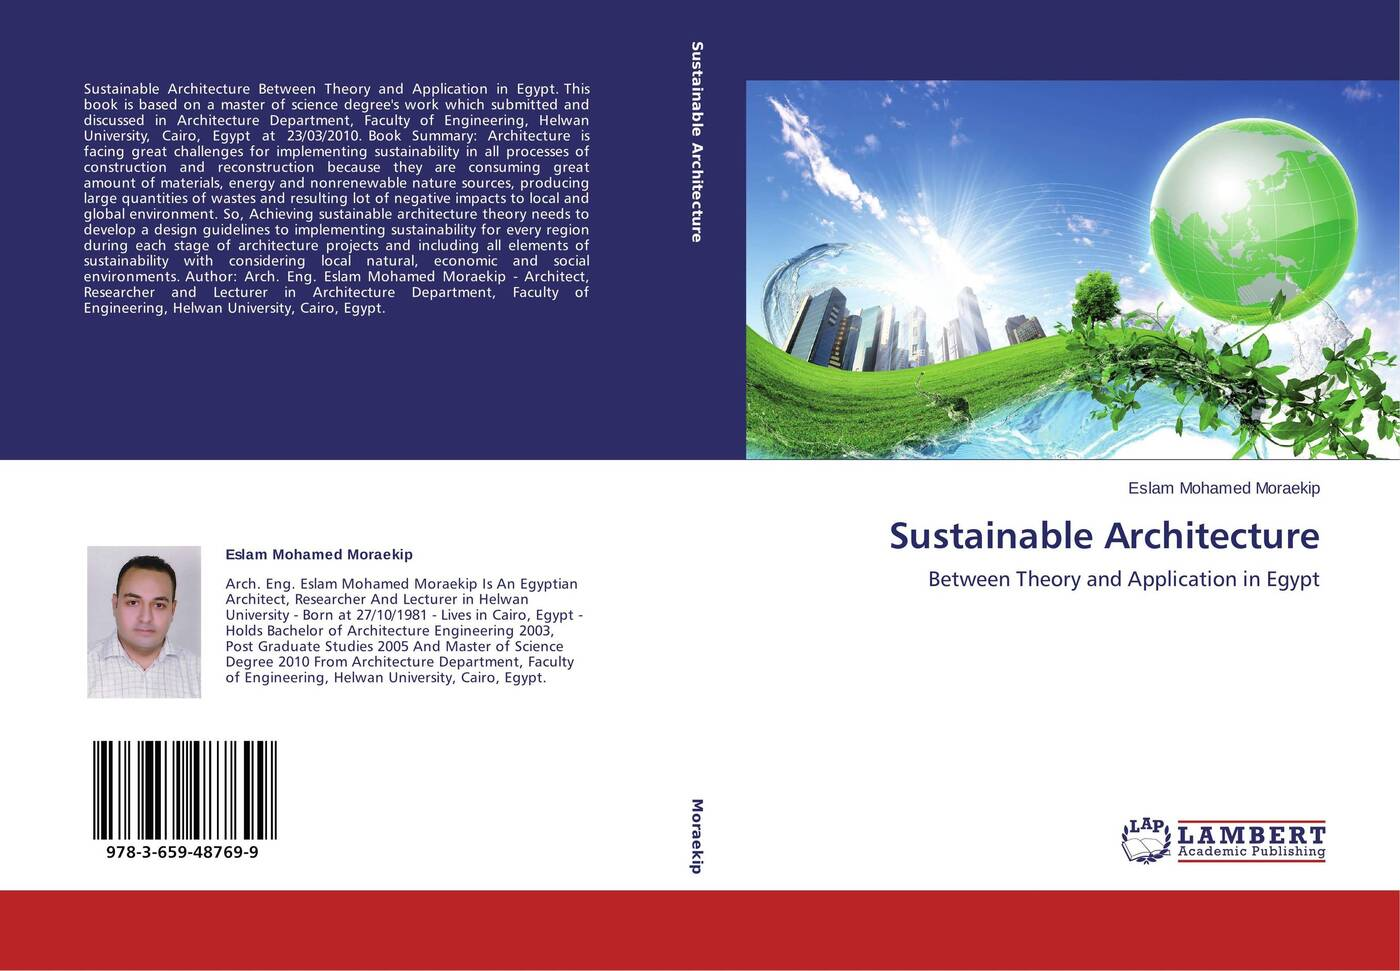 Eslam Mohamed Moraekip Sustainable Architecture 100 years of architecture